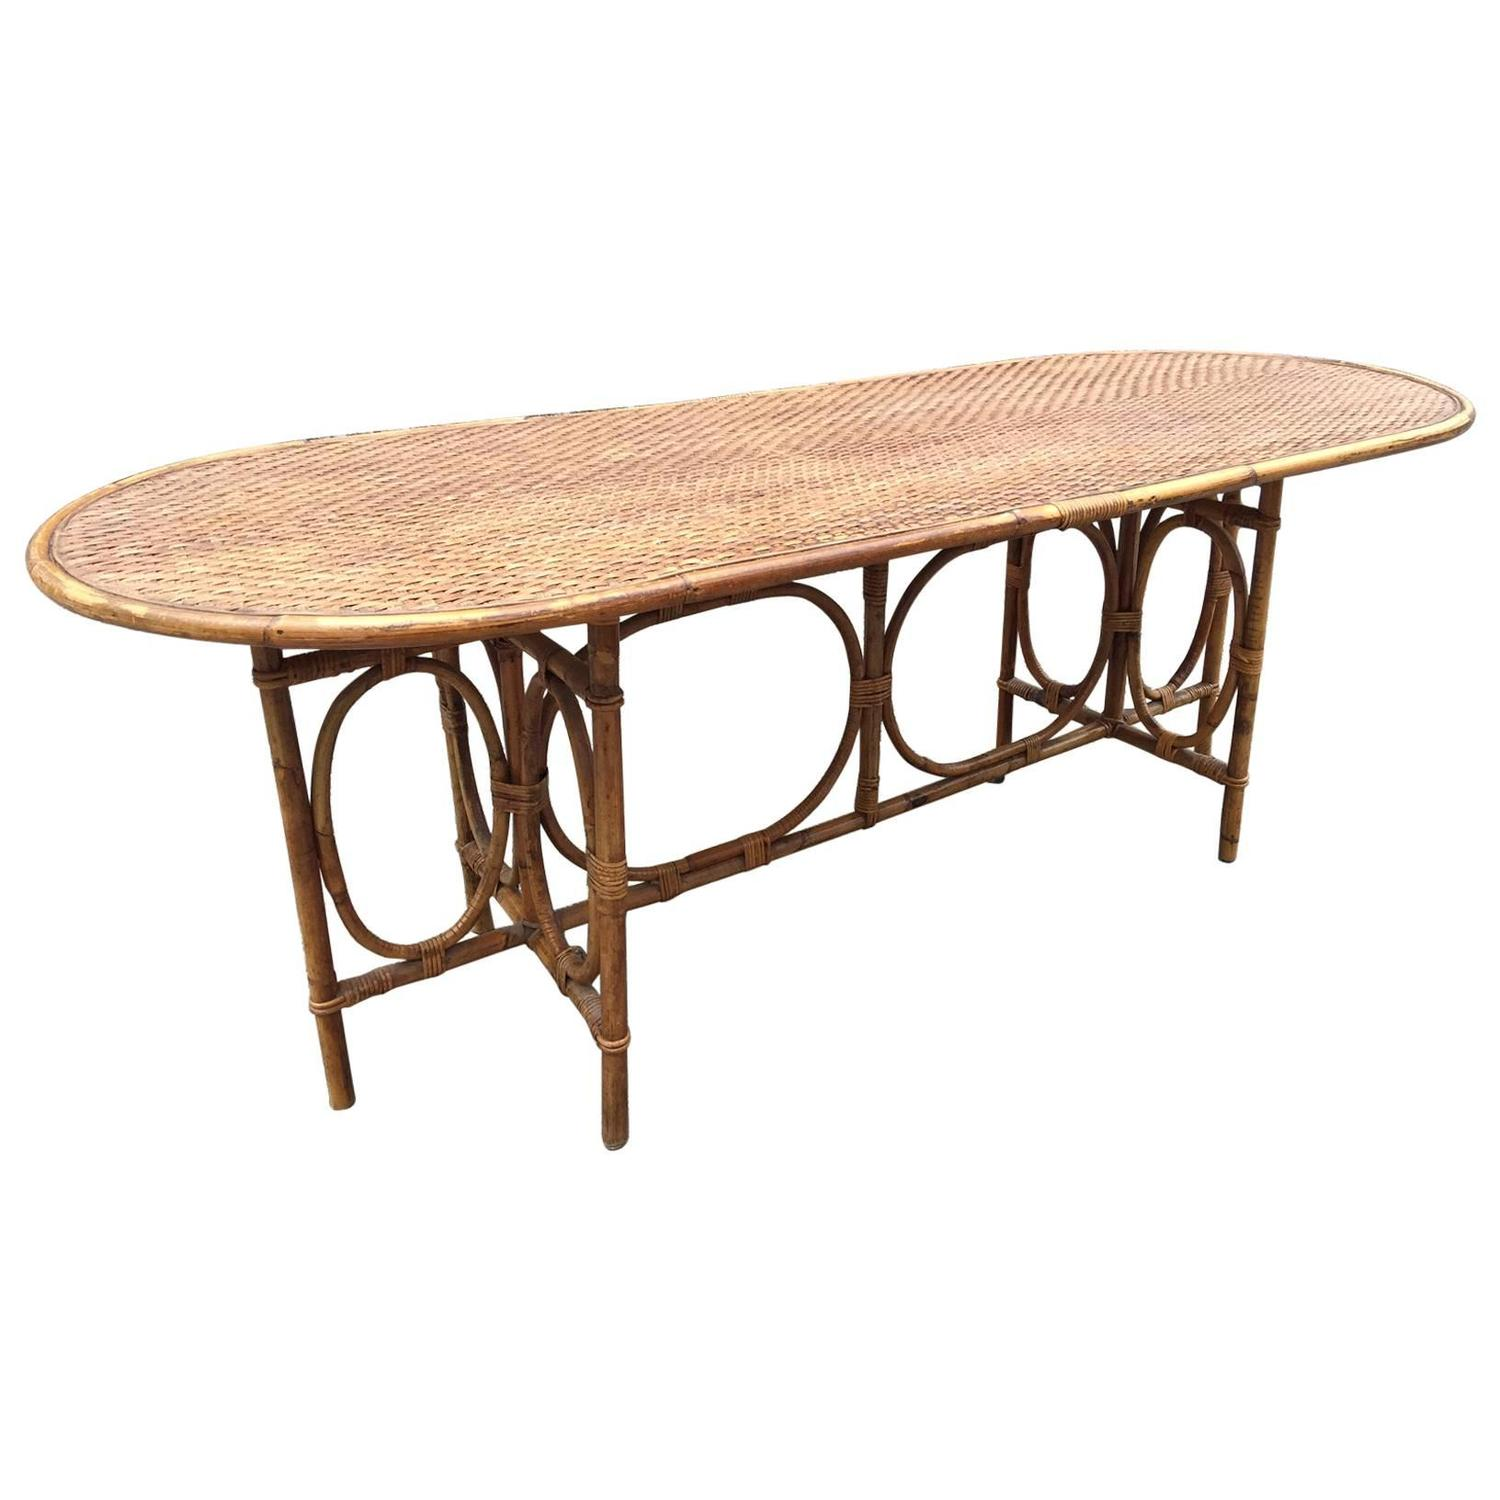 large rattan dining room table circa 1970 for sale at 1stdibs furniture mahogany dining room table extra large inspired